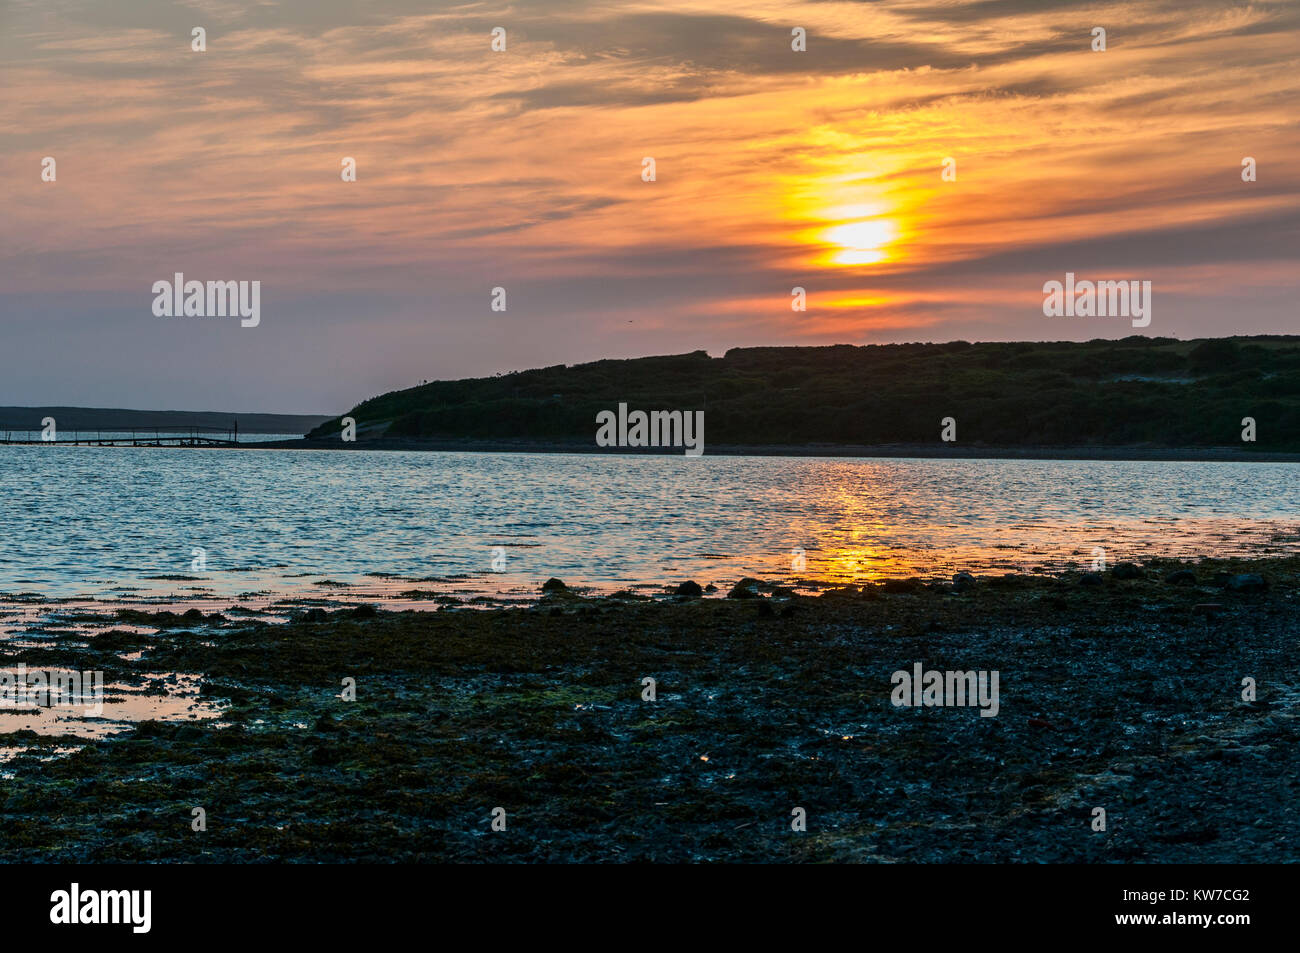 The surface of the Fleet Lagoon reflects some of the spectacular warm orange tones of sunset across the sky as darkness - Stock Image